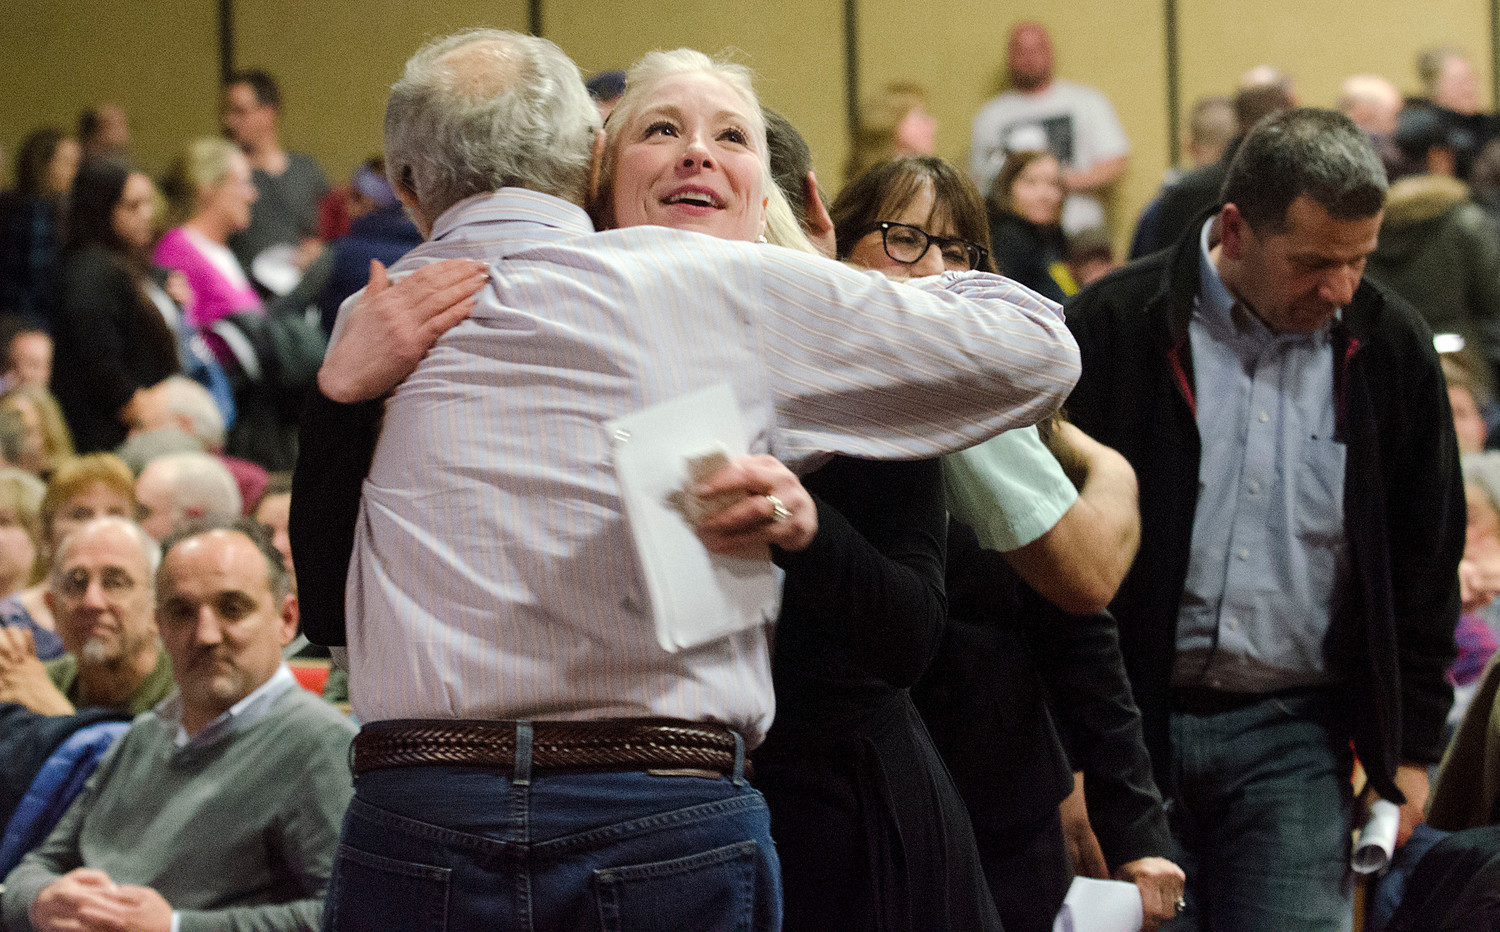 Tracy Priestner a member of the school building committee, receives a congratulatory hug after the vote.